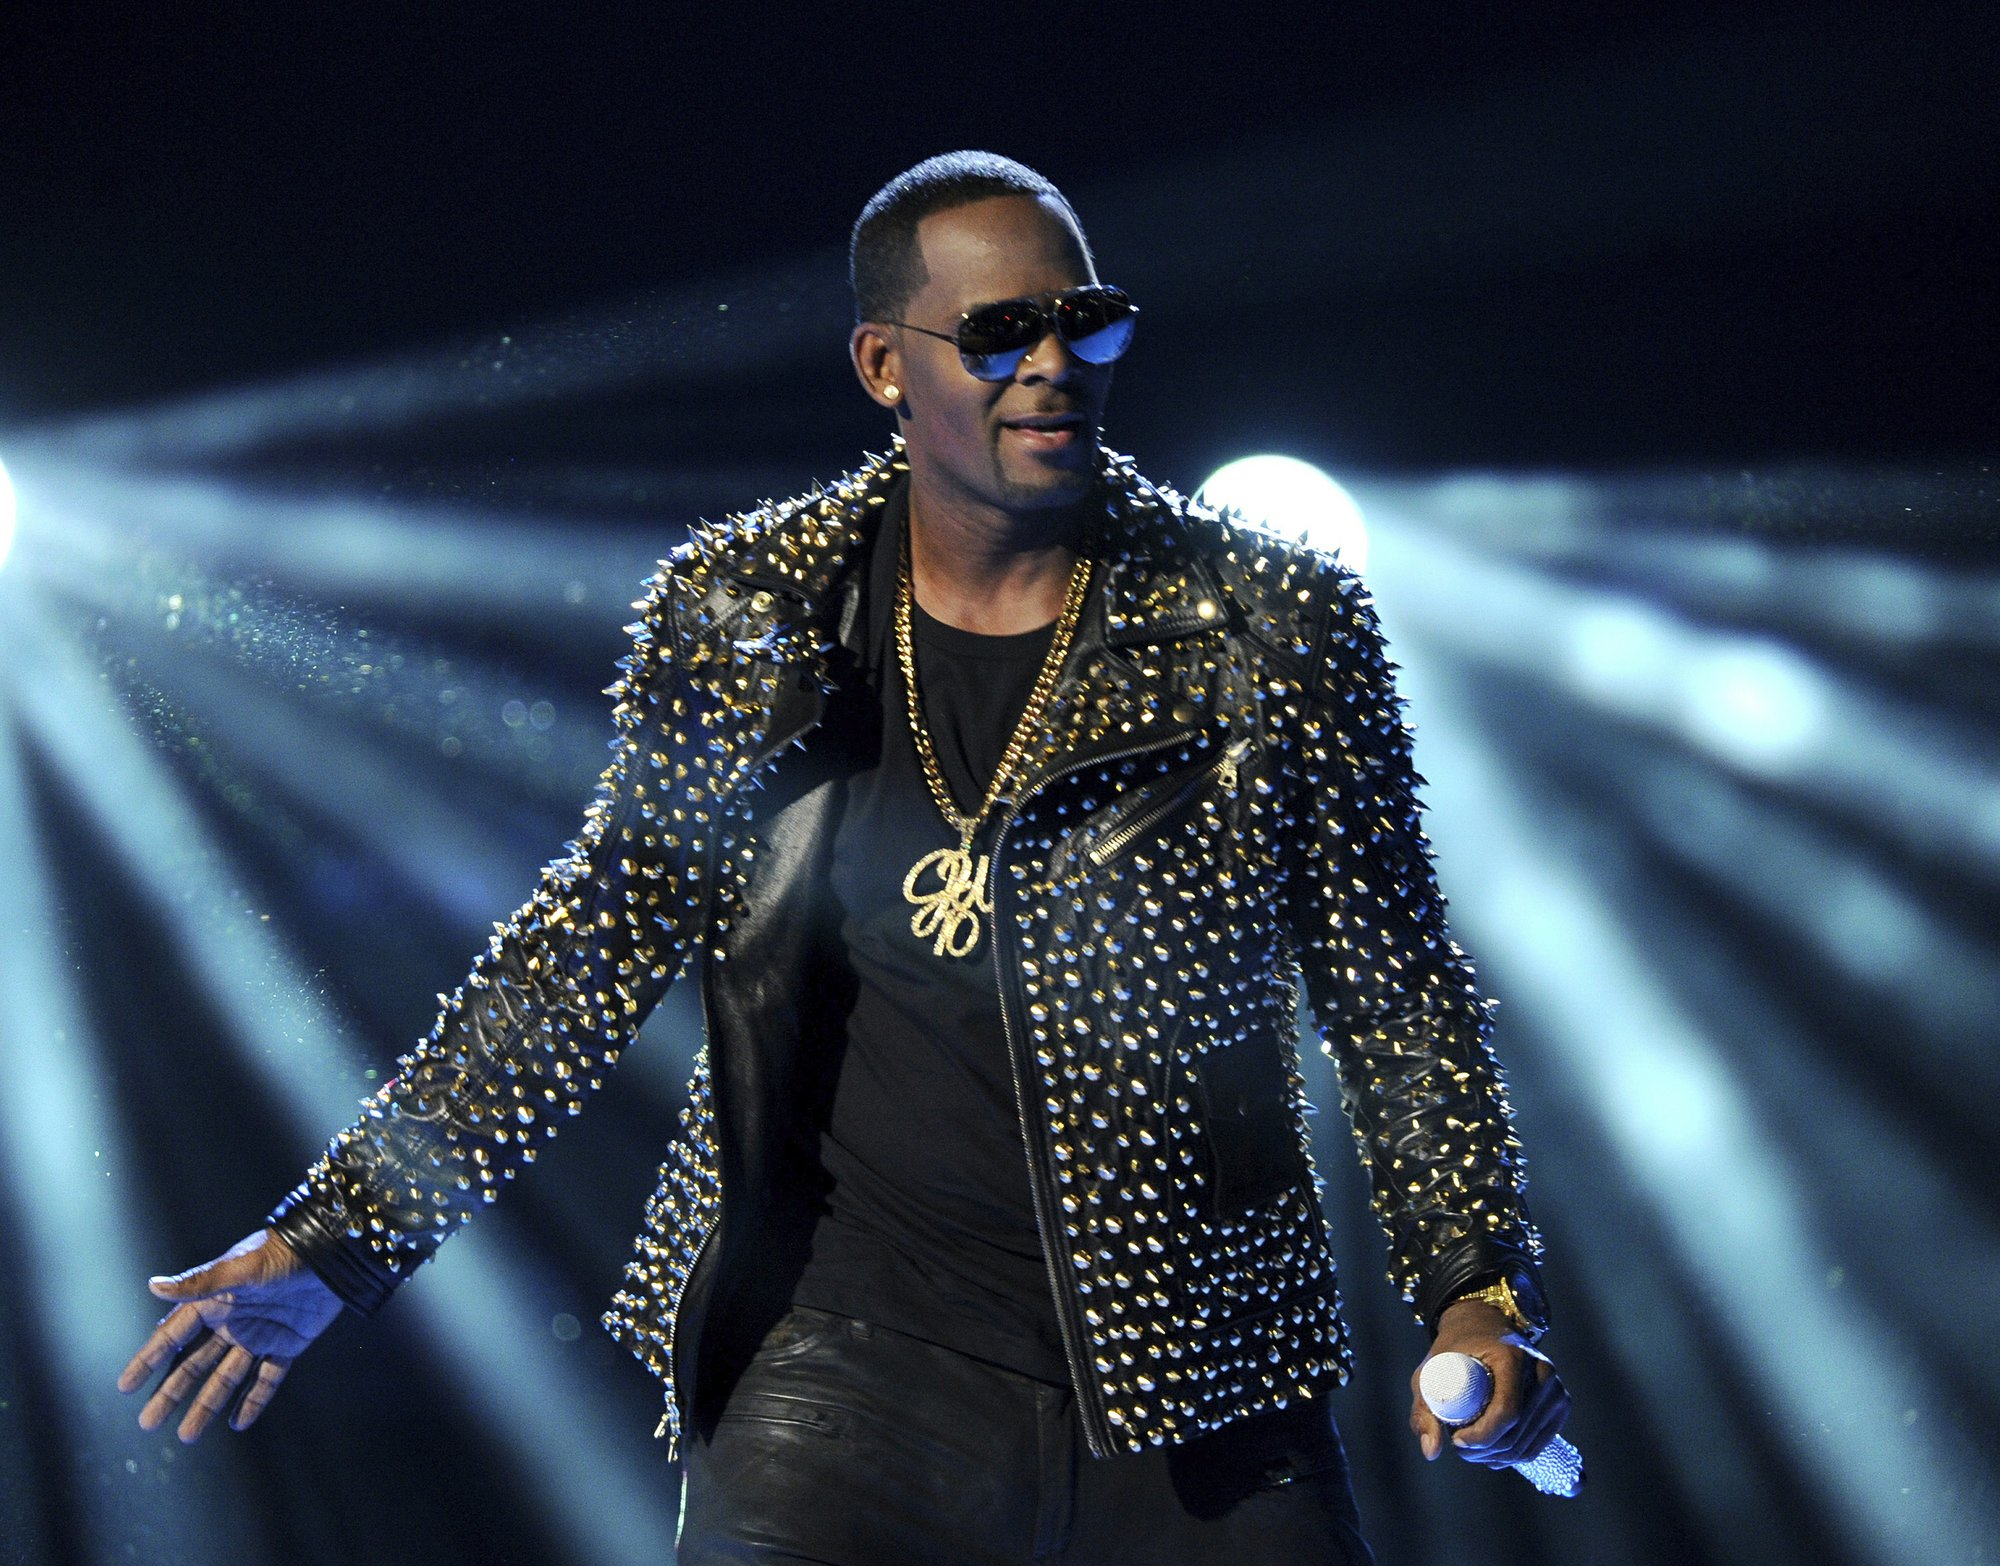 Georgia man tells police R. Kelly's manager threatened him